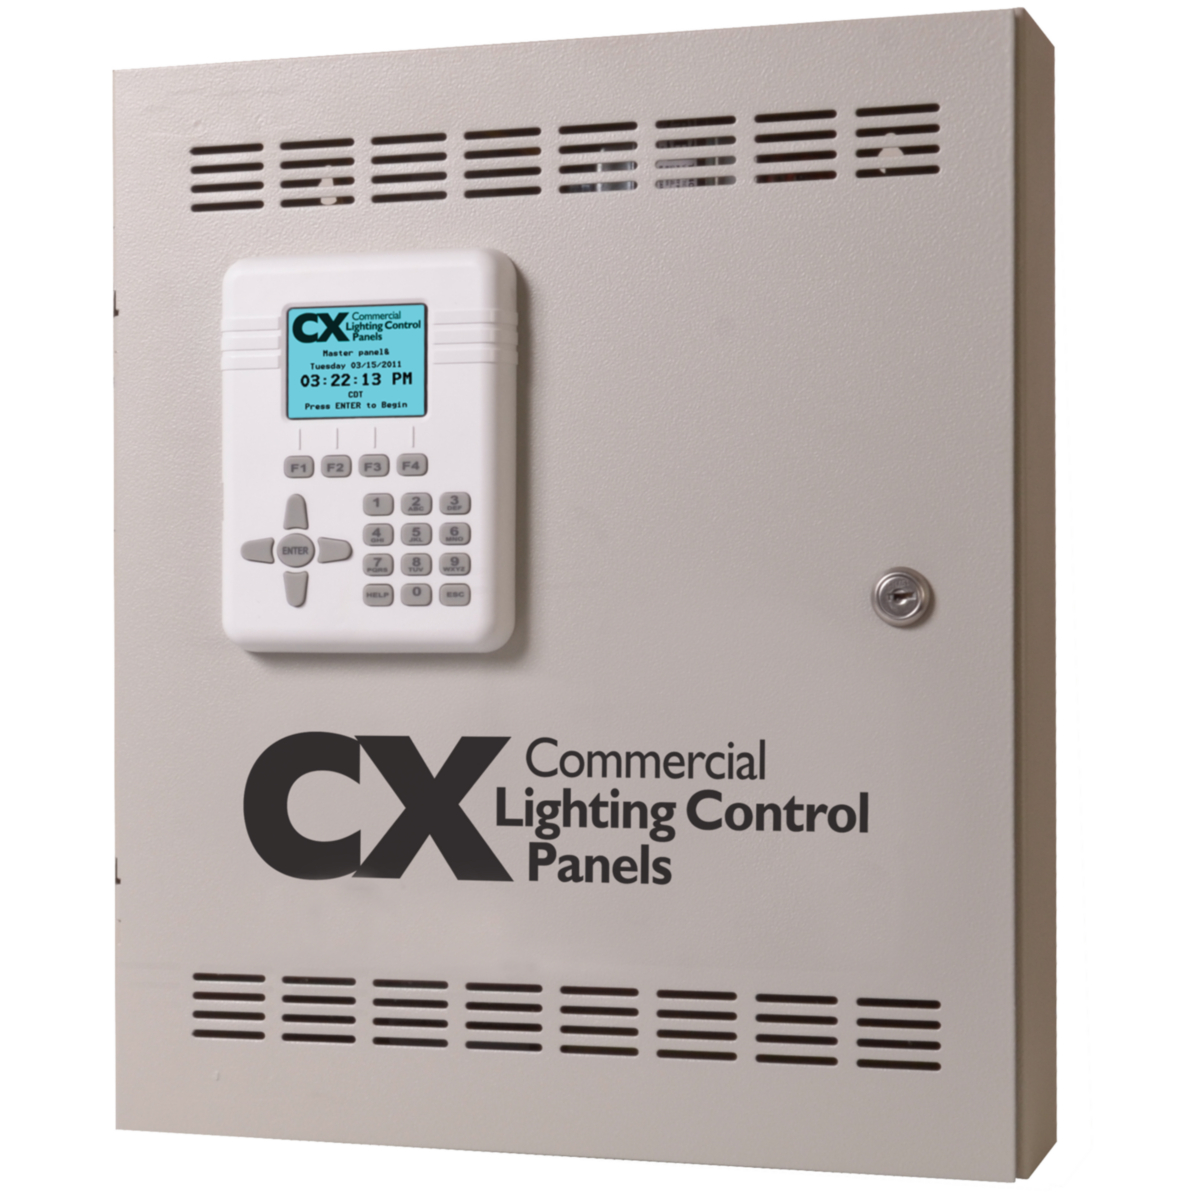 Cx Lighting Control Panels 4 And 8 Relays Brand Hubbell Wiring Diagrams For Circuits Hcs Cx04 Panel Jmk1192 3 Prodimage